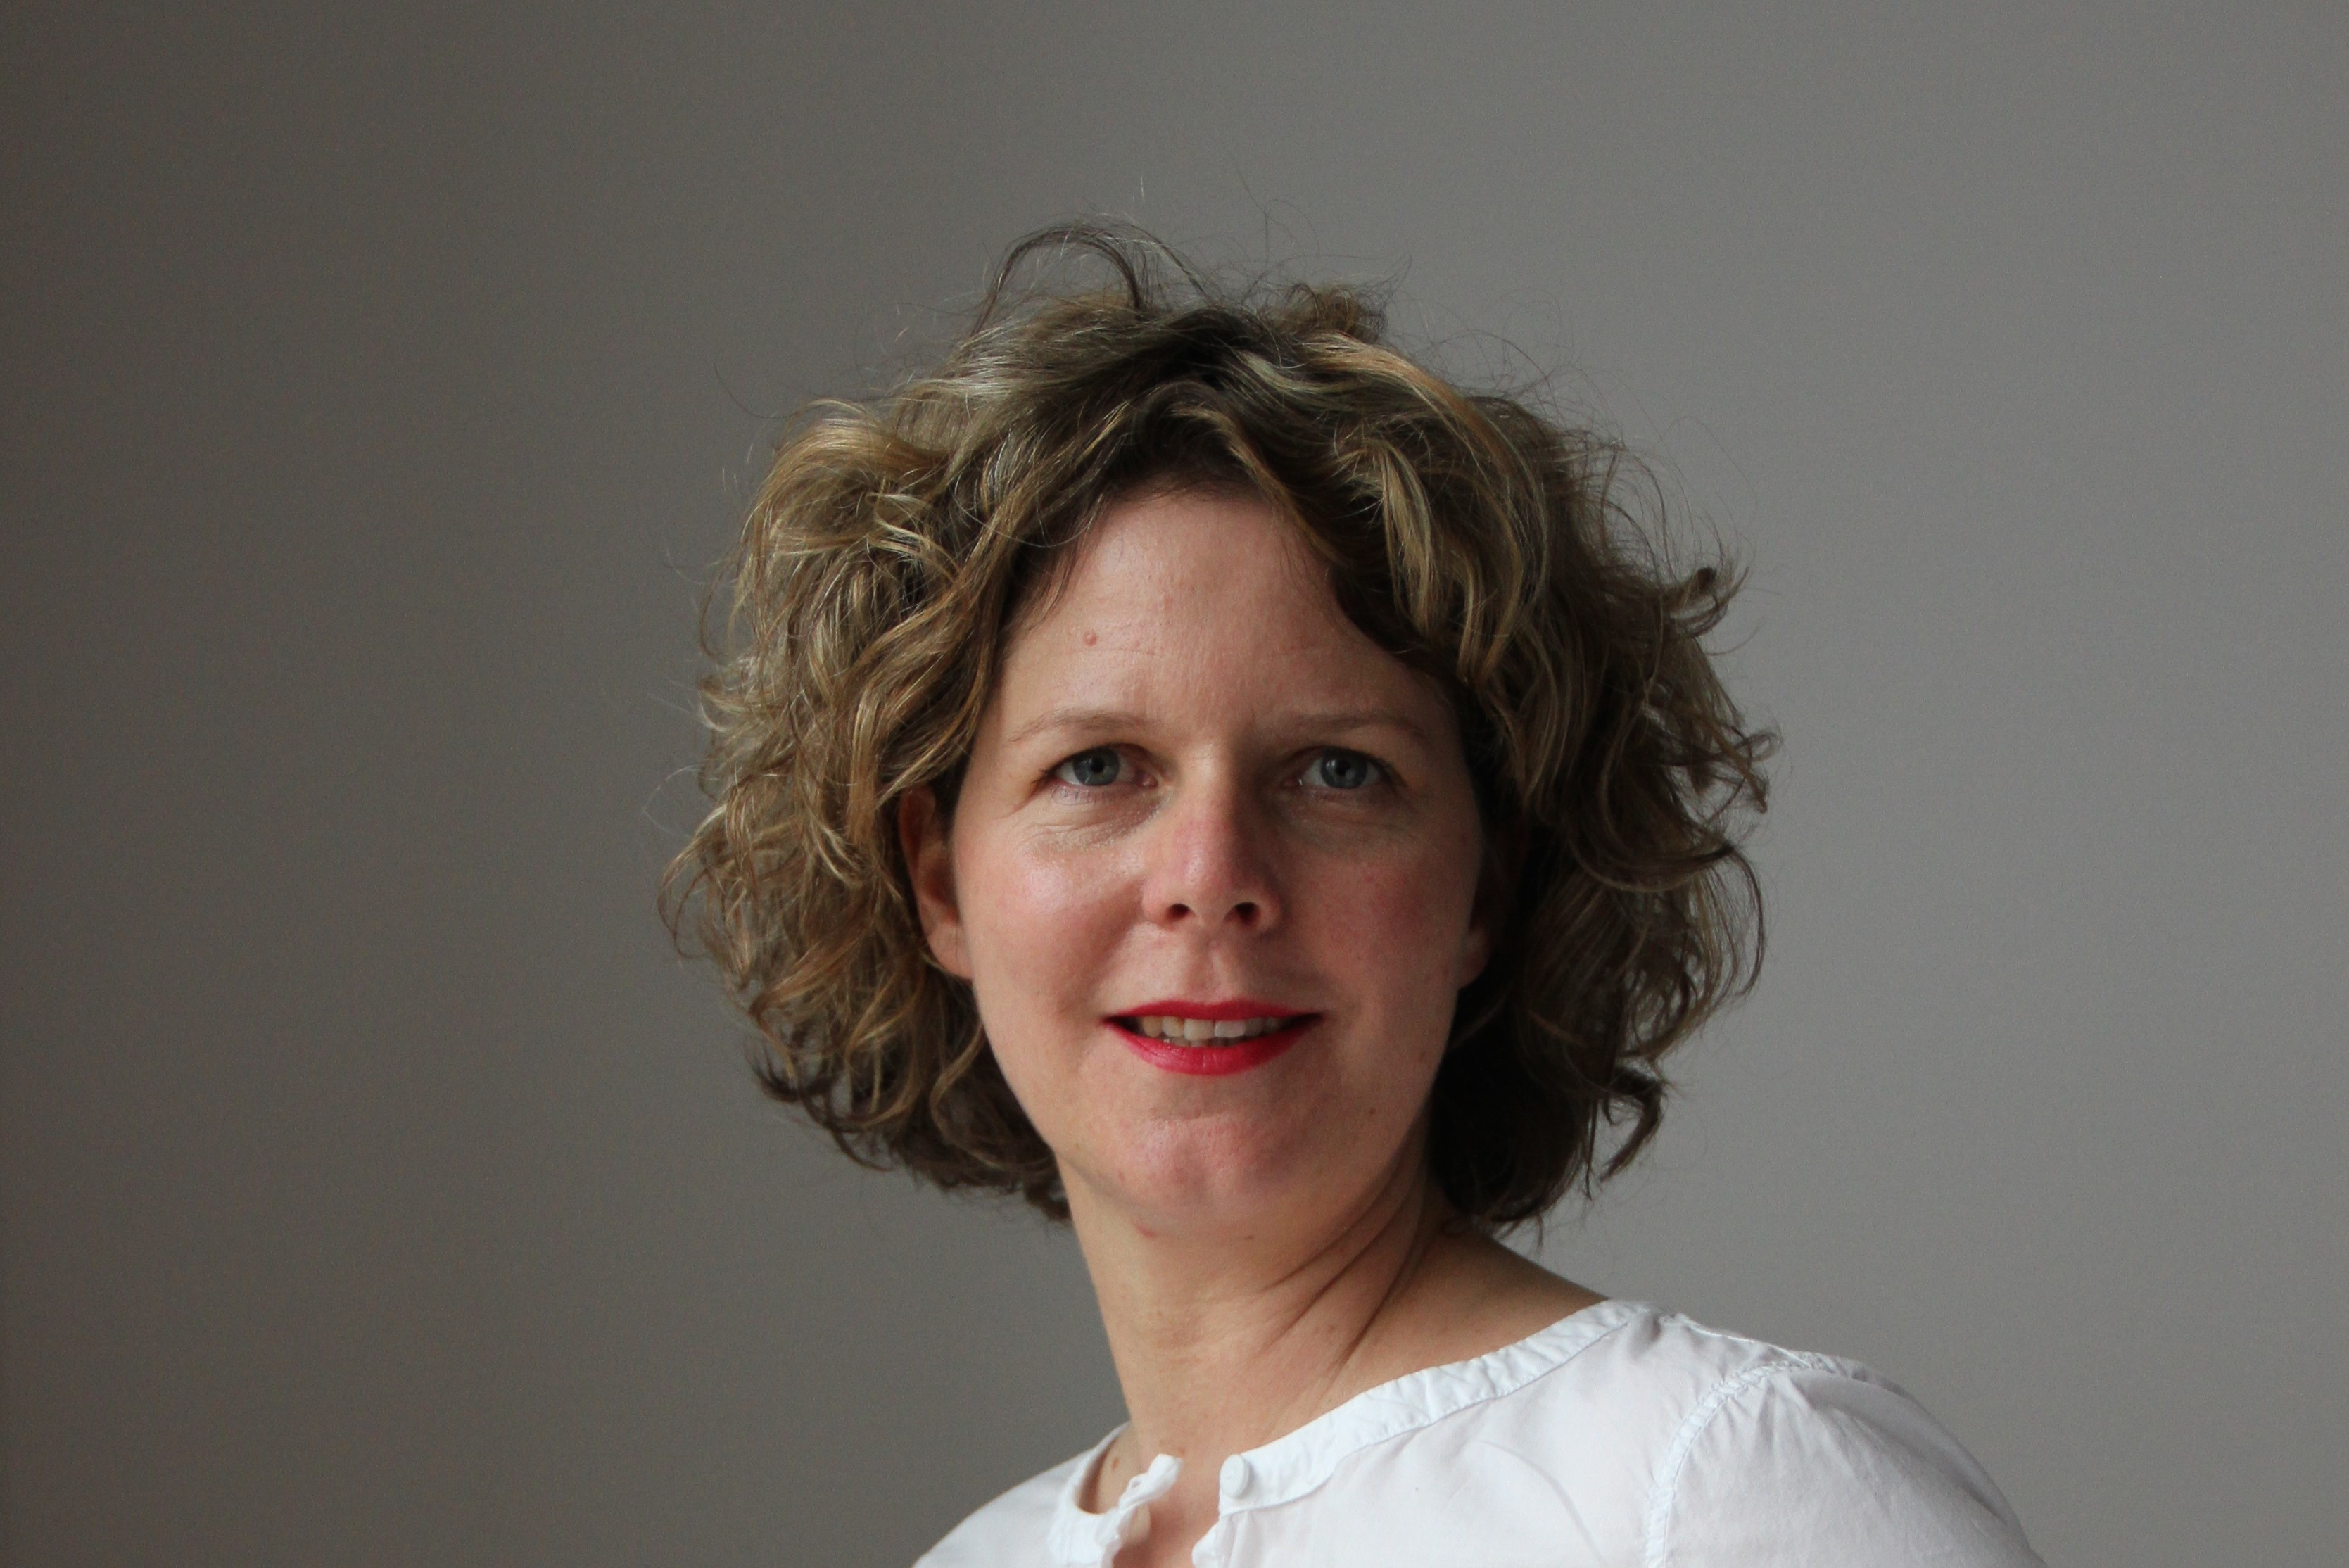 Dr. Tina Wessels